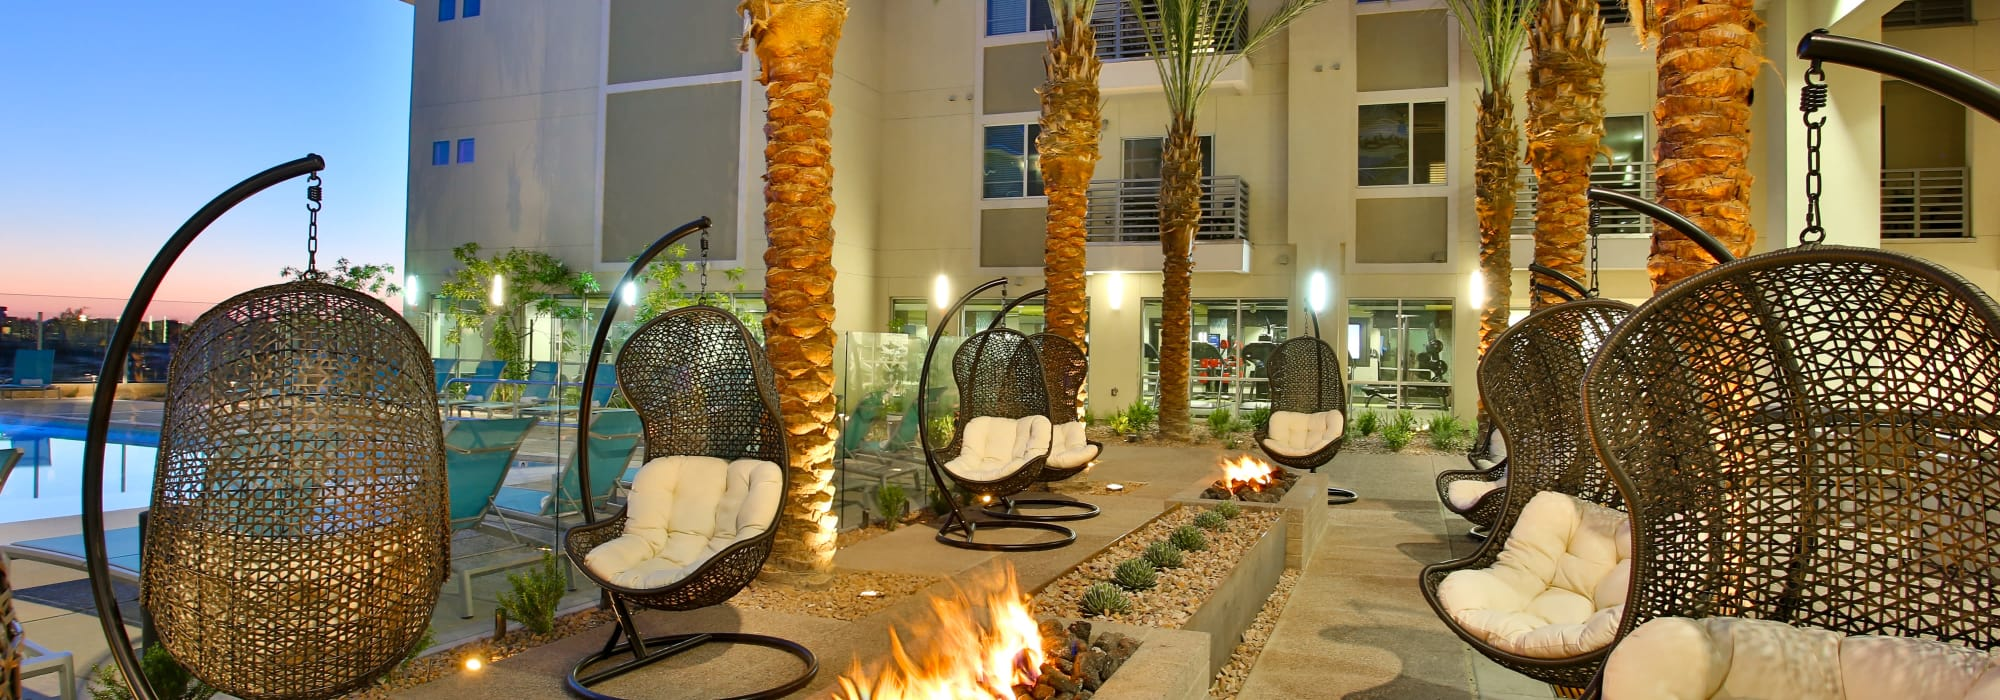 Swinging chairs near the fire pits at dusk at Slate Scottsdale in Phoenix, Arizona